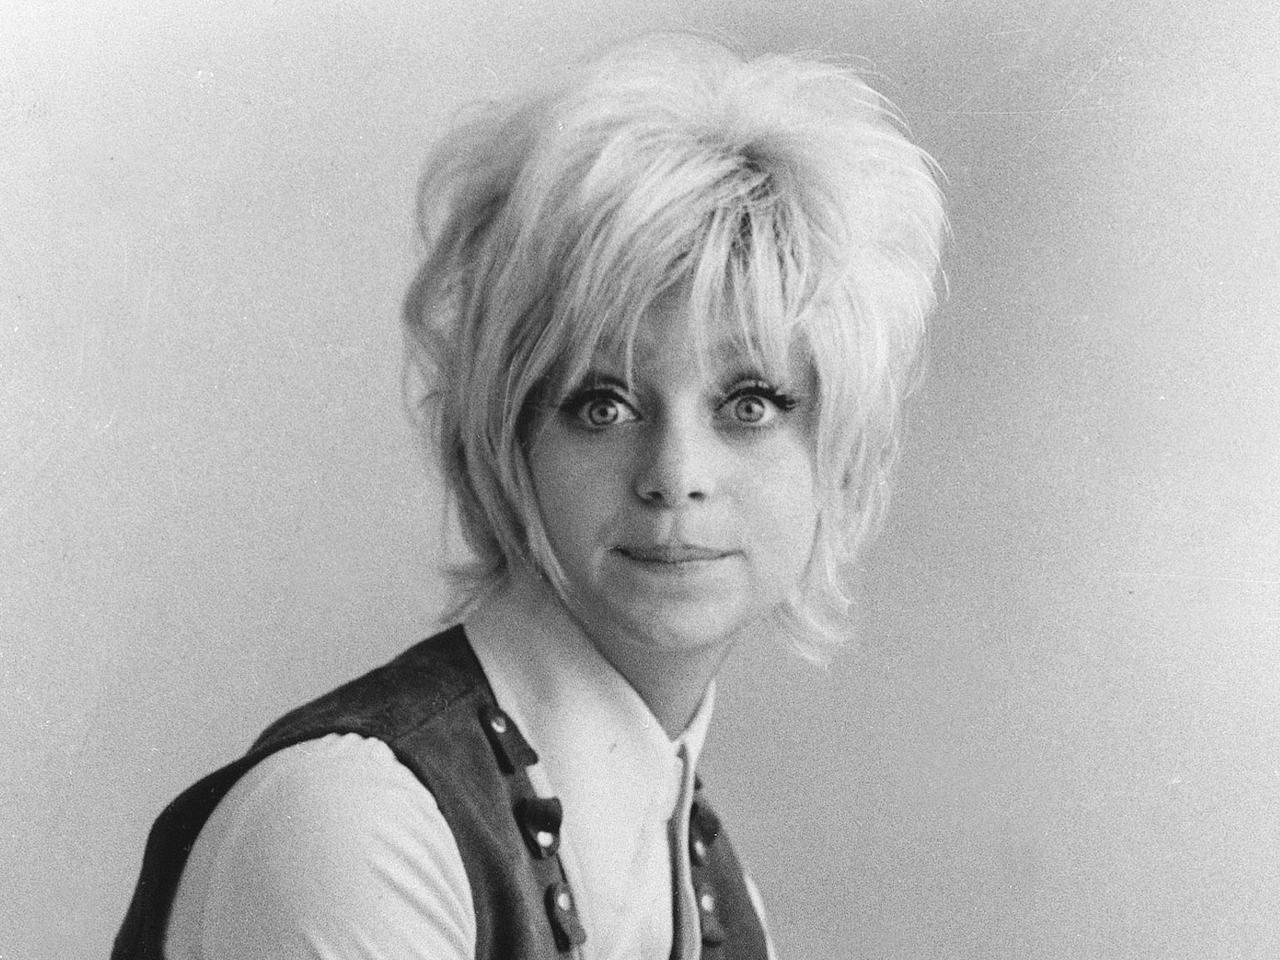 Goldie - Goldie Hawn - Pictures - CBS News